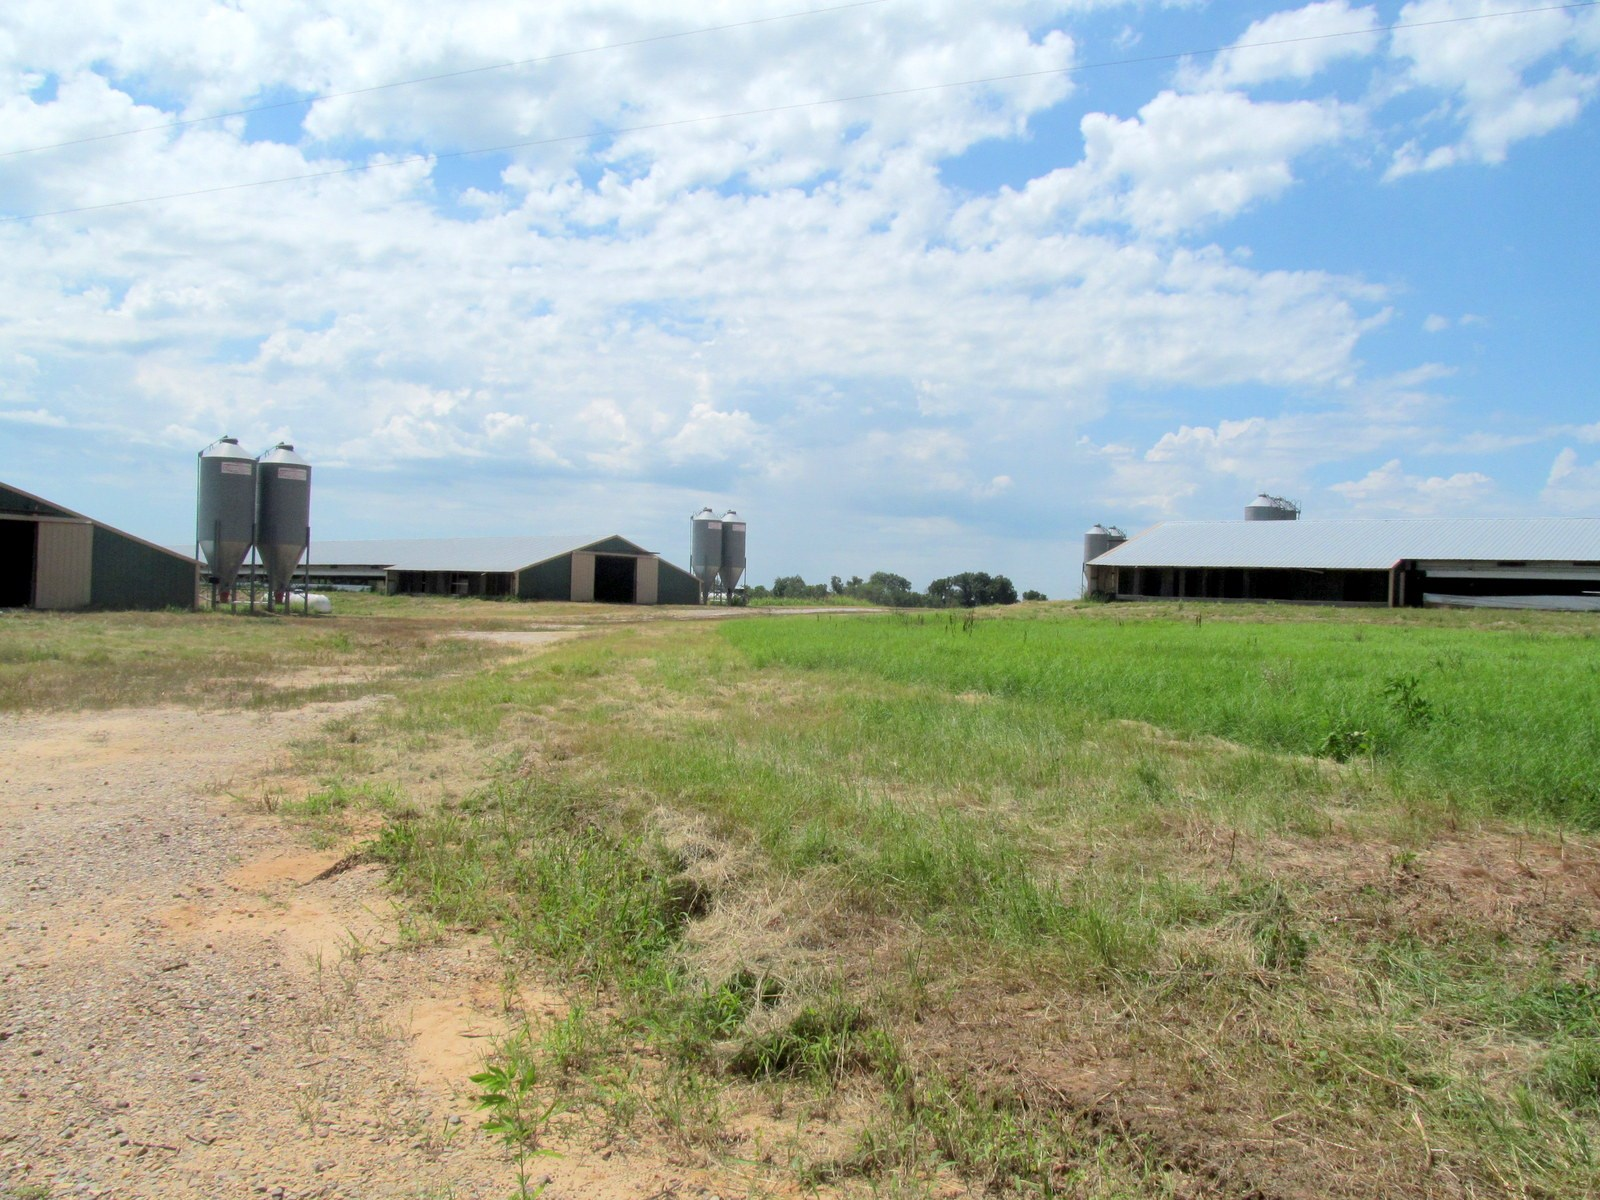 POULTRY BROILER FARM FOR SALE EAST TEXAS - HOPKINS COUNTY TX